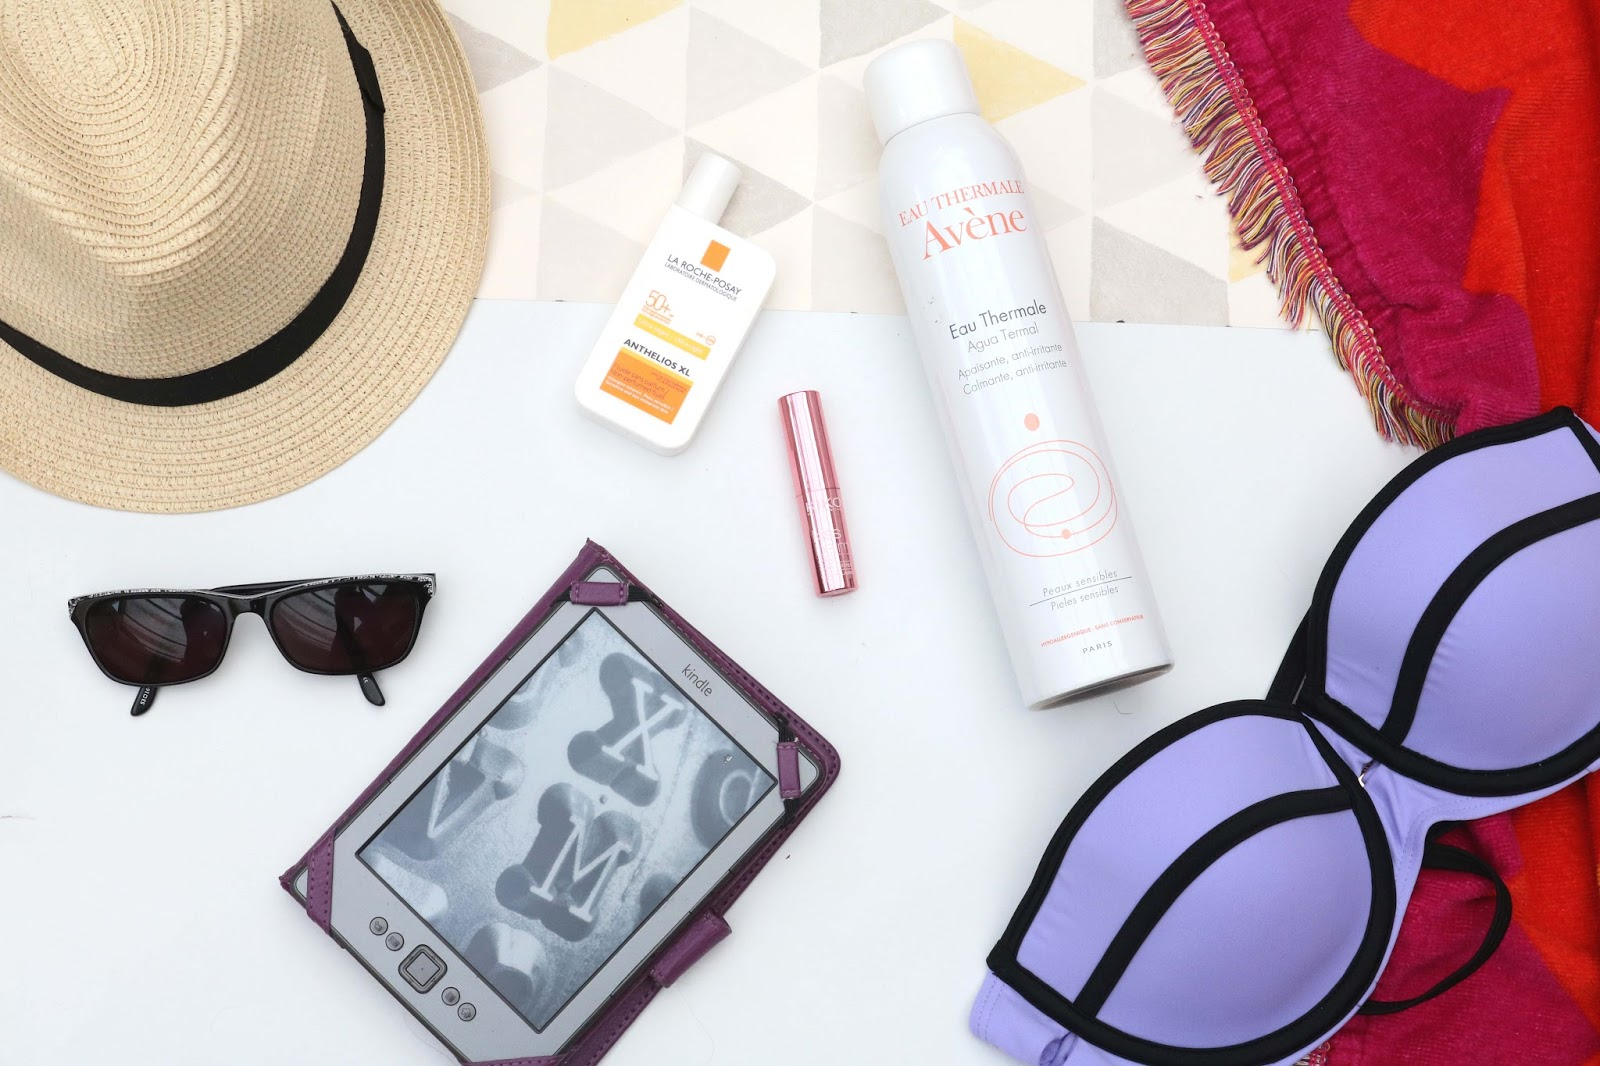 A beach day must haves, sunhat,towel, bikini, suncream, sunglasses, kindle, lip balm, cooling spray